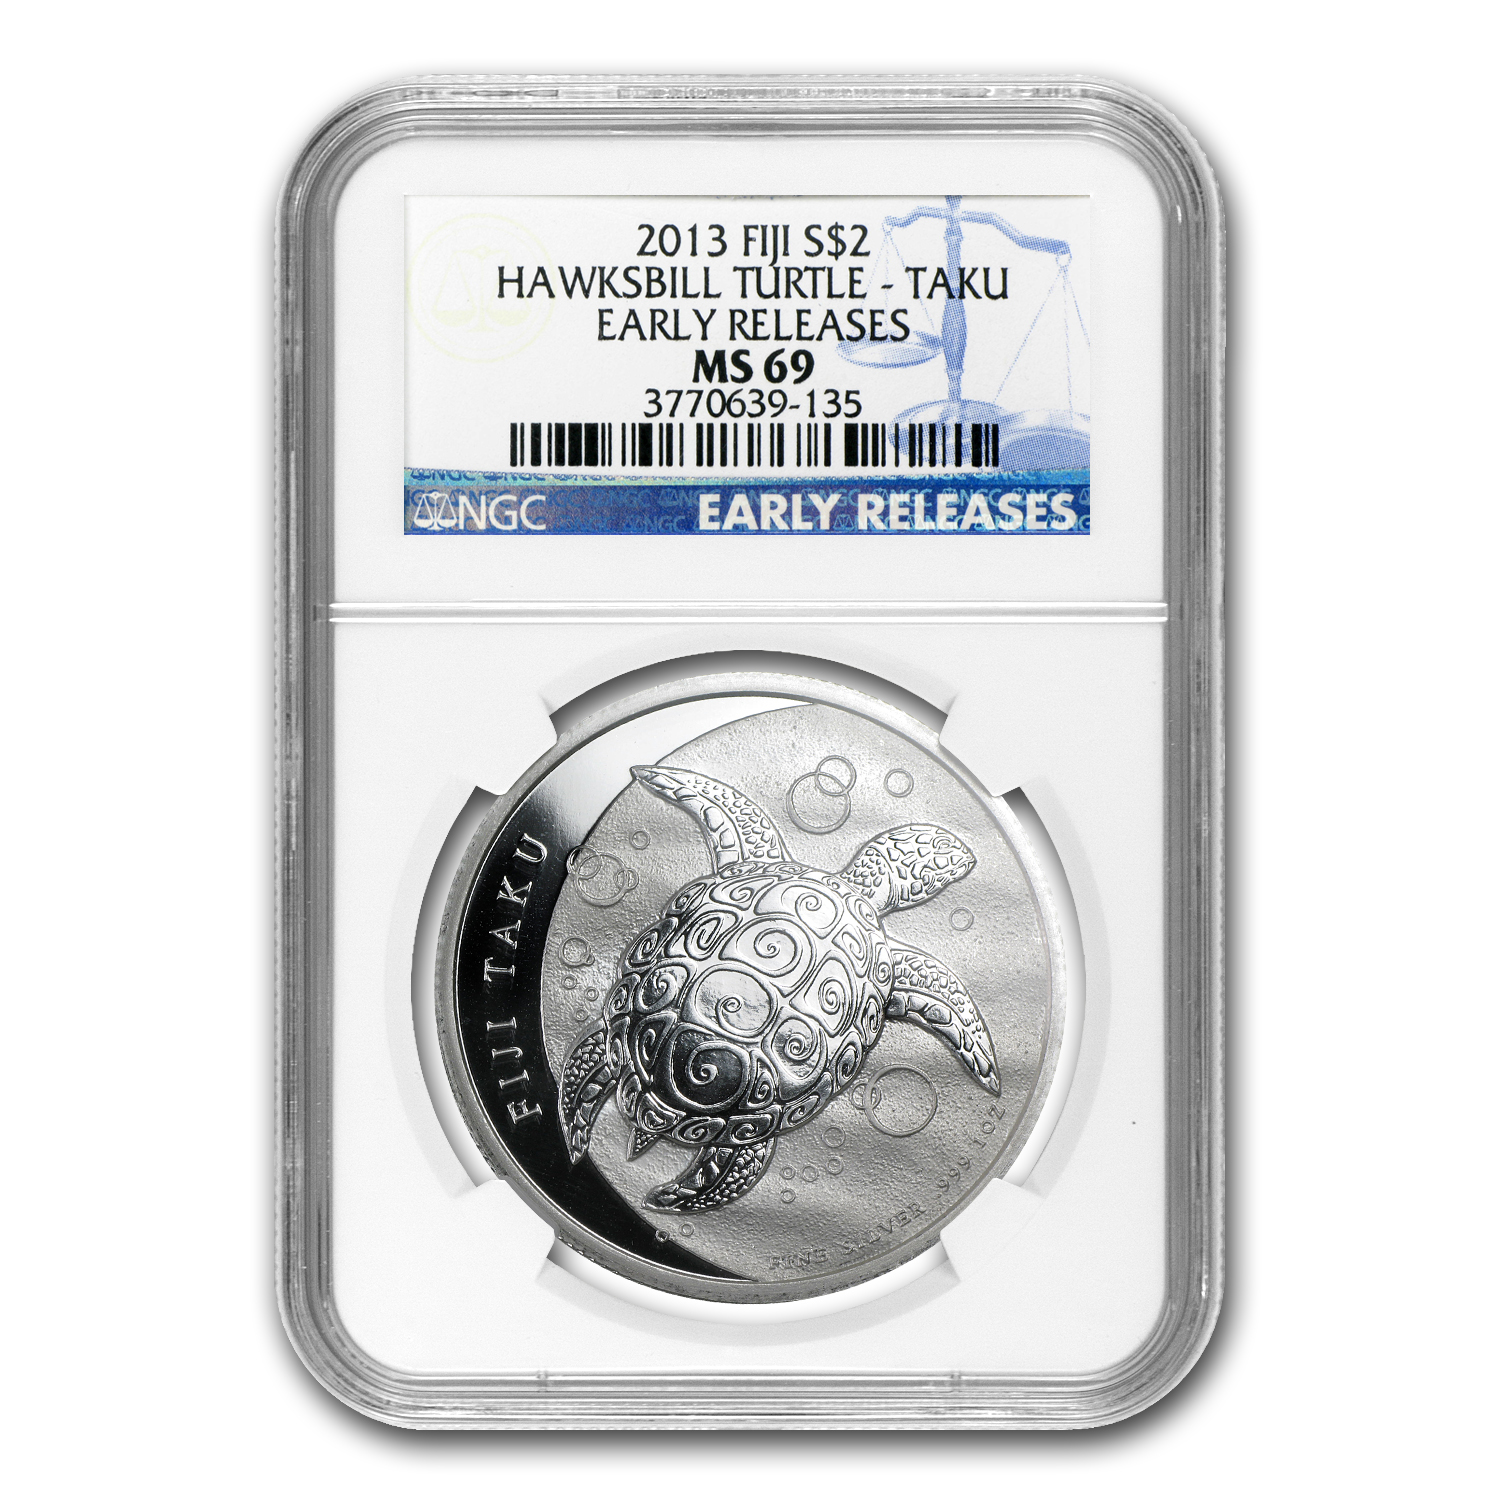 2013 1 oz Silver $2 Fiji Taku Fine MS-69 NGC Early Release